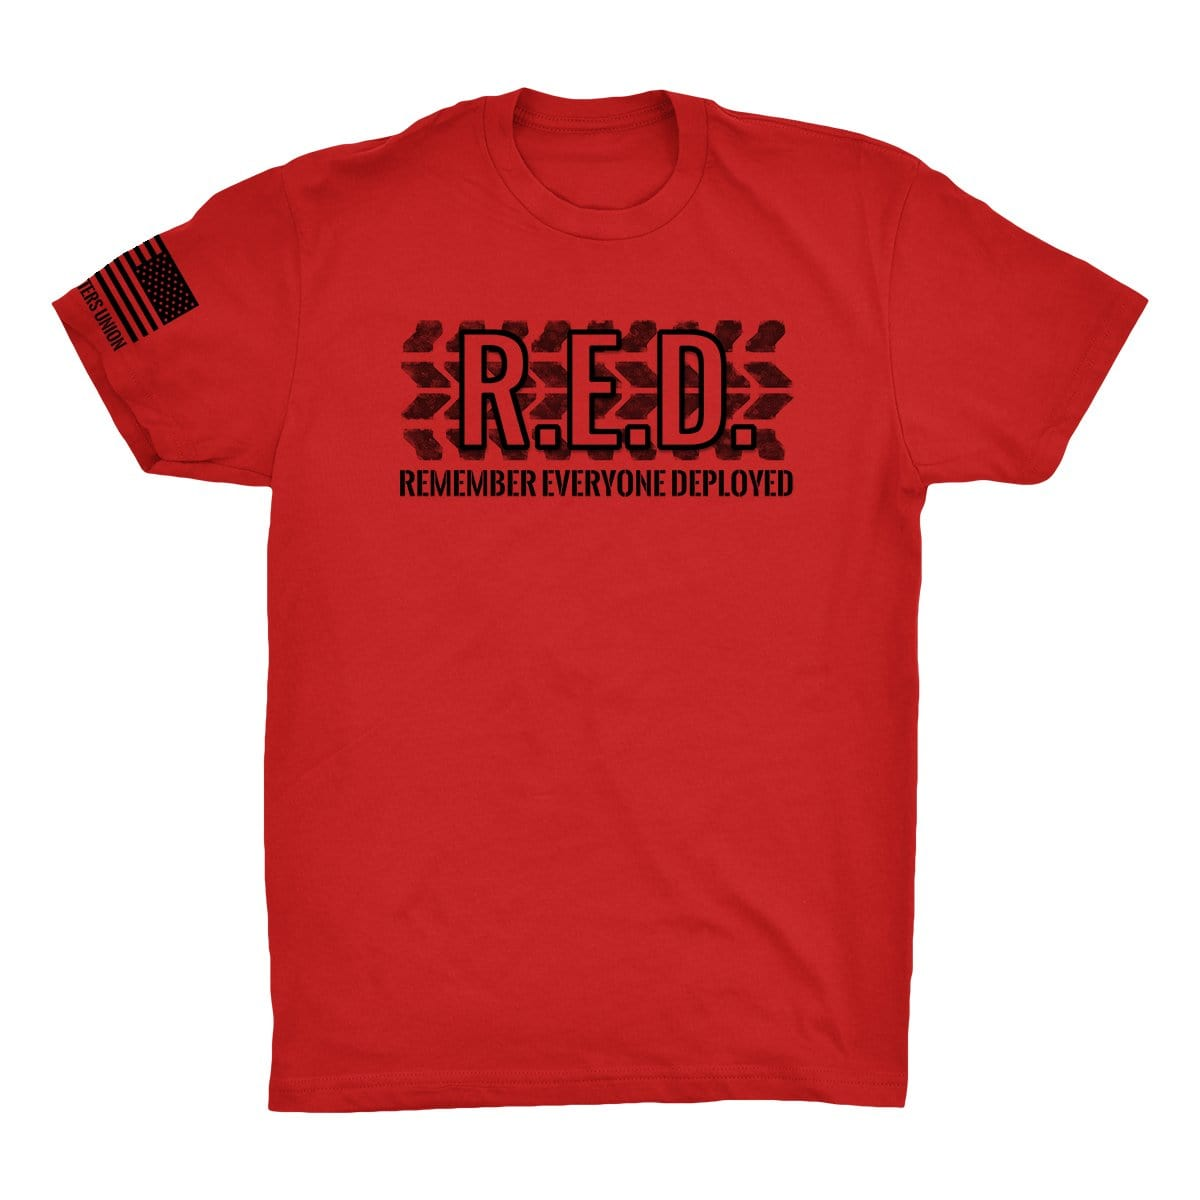 R.E.D. - Red - T-Shirts - Pipe Hitters Union